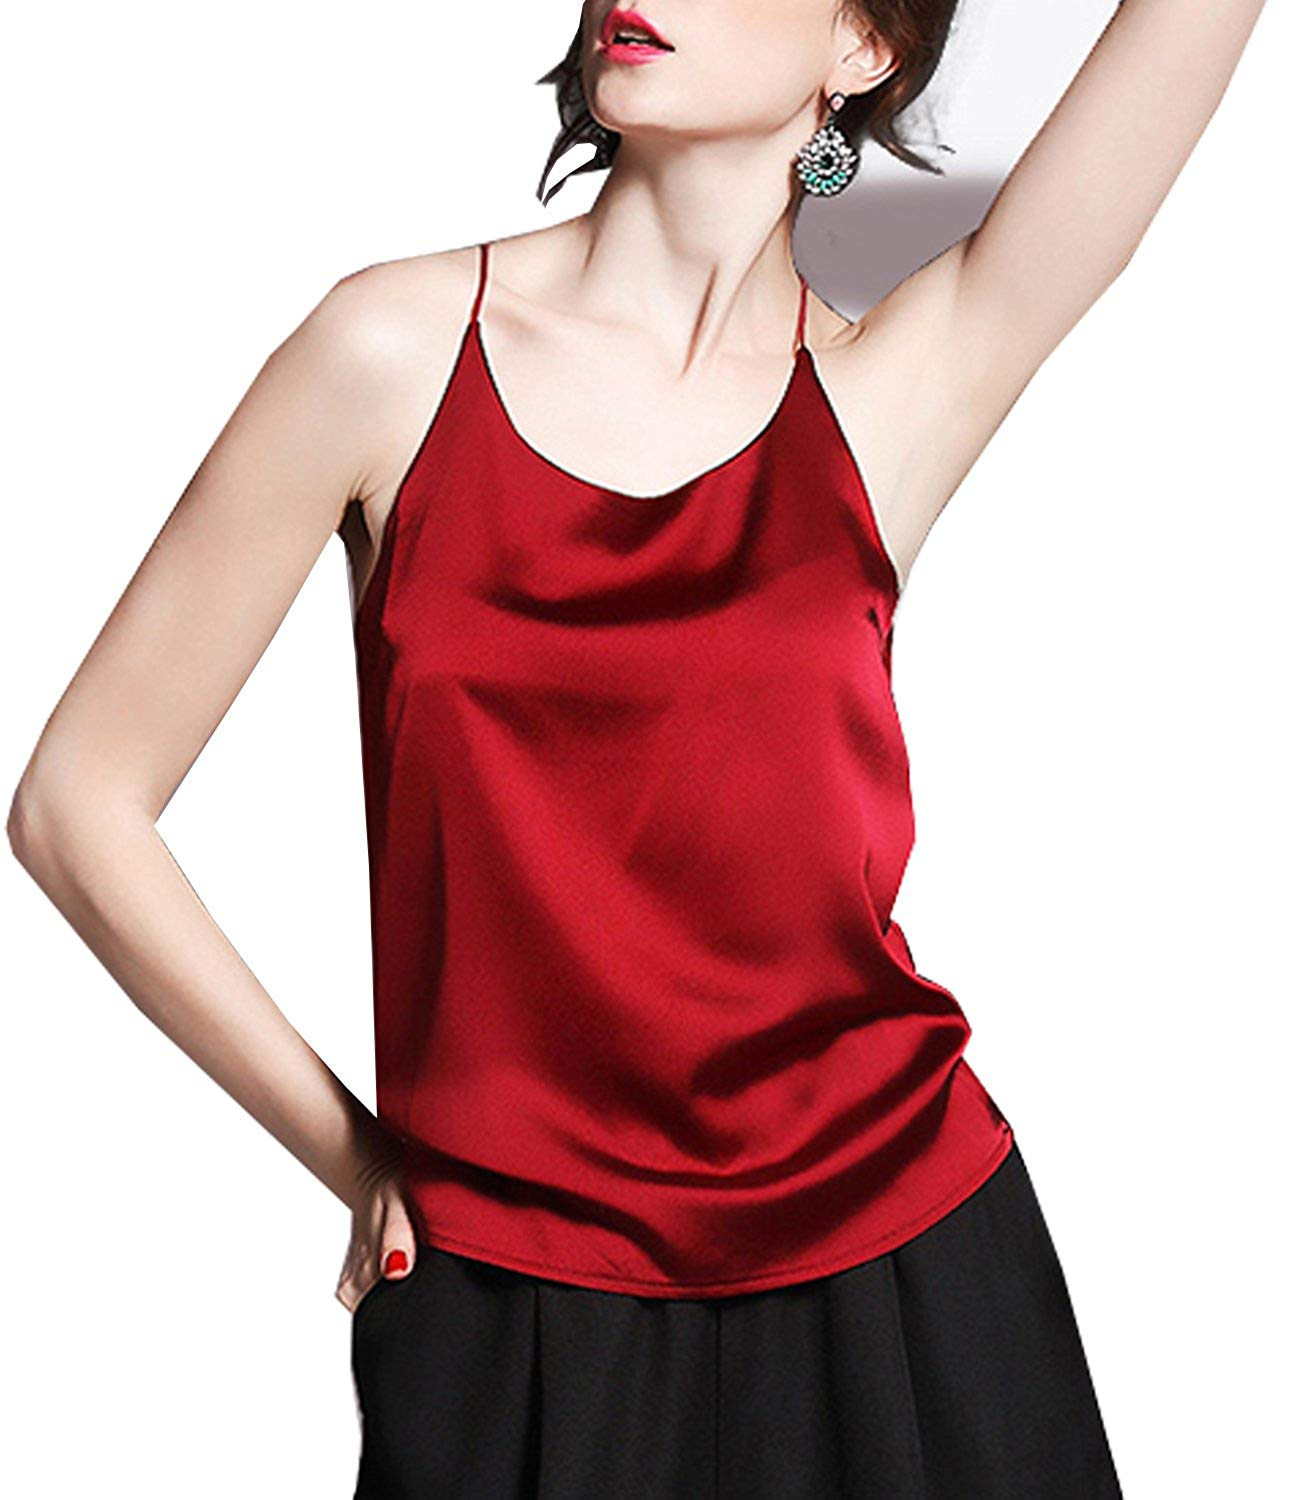 7052338c48c ... Pajama Lingerie Printing Cami Tops and Shorts. null. null. Get  Quotations · Ayervici Womens Soft Silk Camisoles Spaghetti Strap Summer  Cami Tank Tops